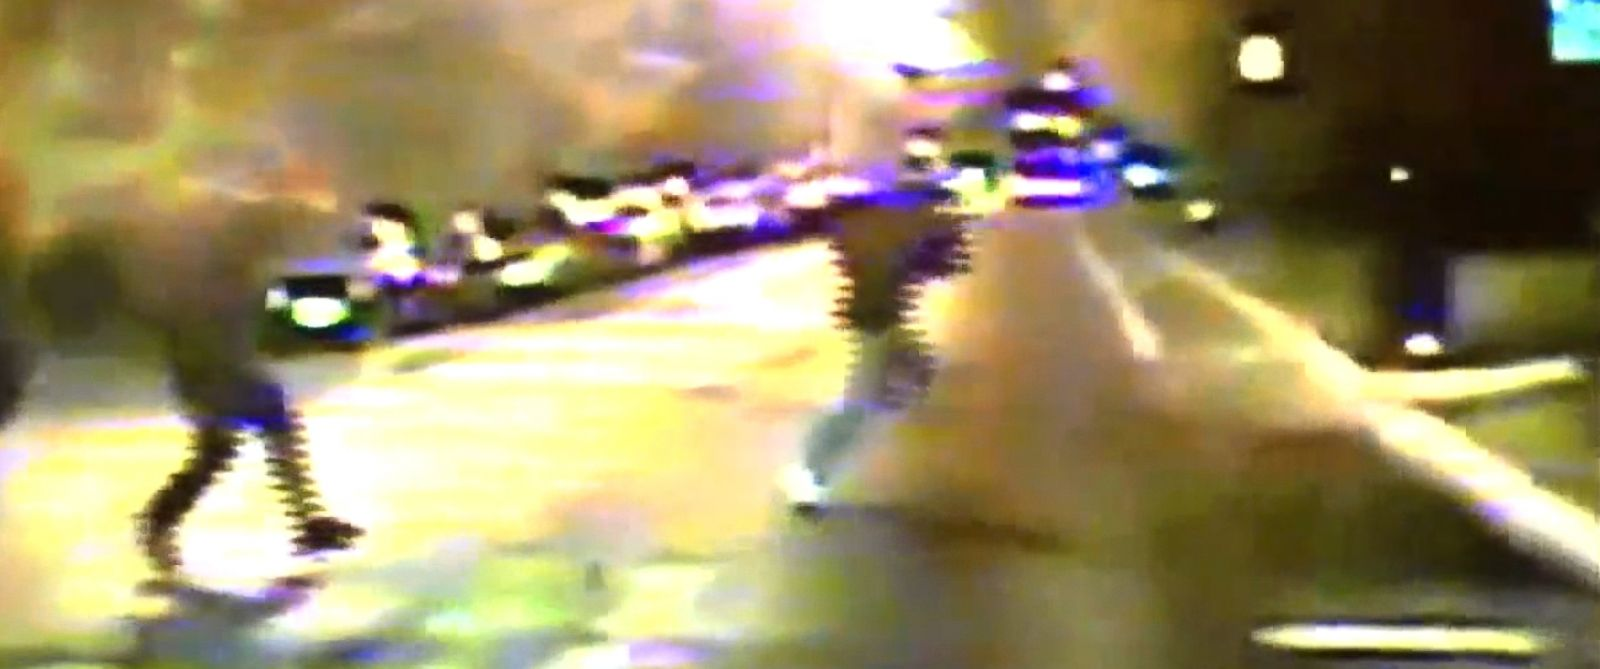 PHOTO: Police released dash cam video on Dec. 7, 2015 showing the fatal police-involved shooting of Ronald Johnson in Chicago in October, 2014.